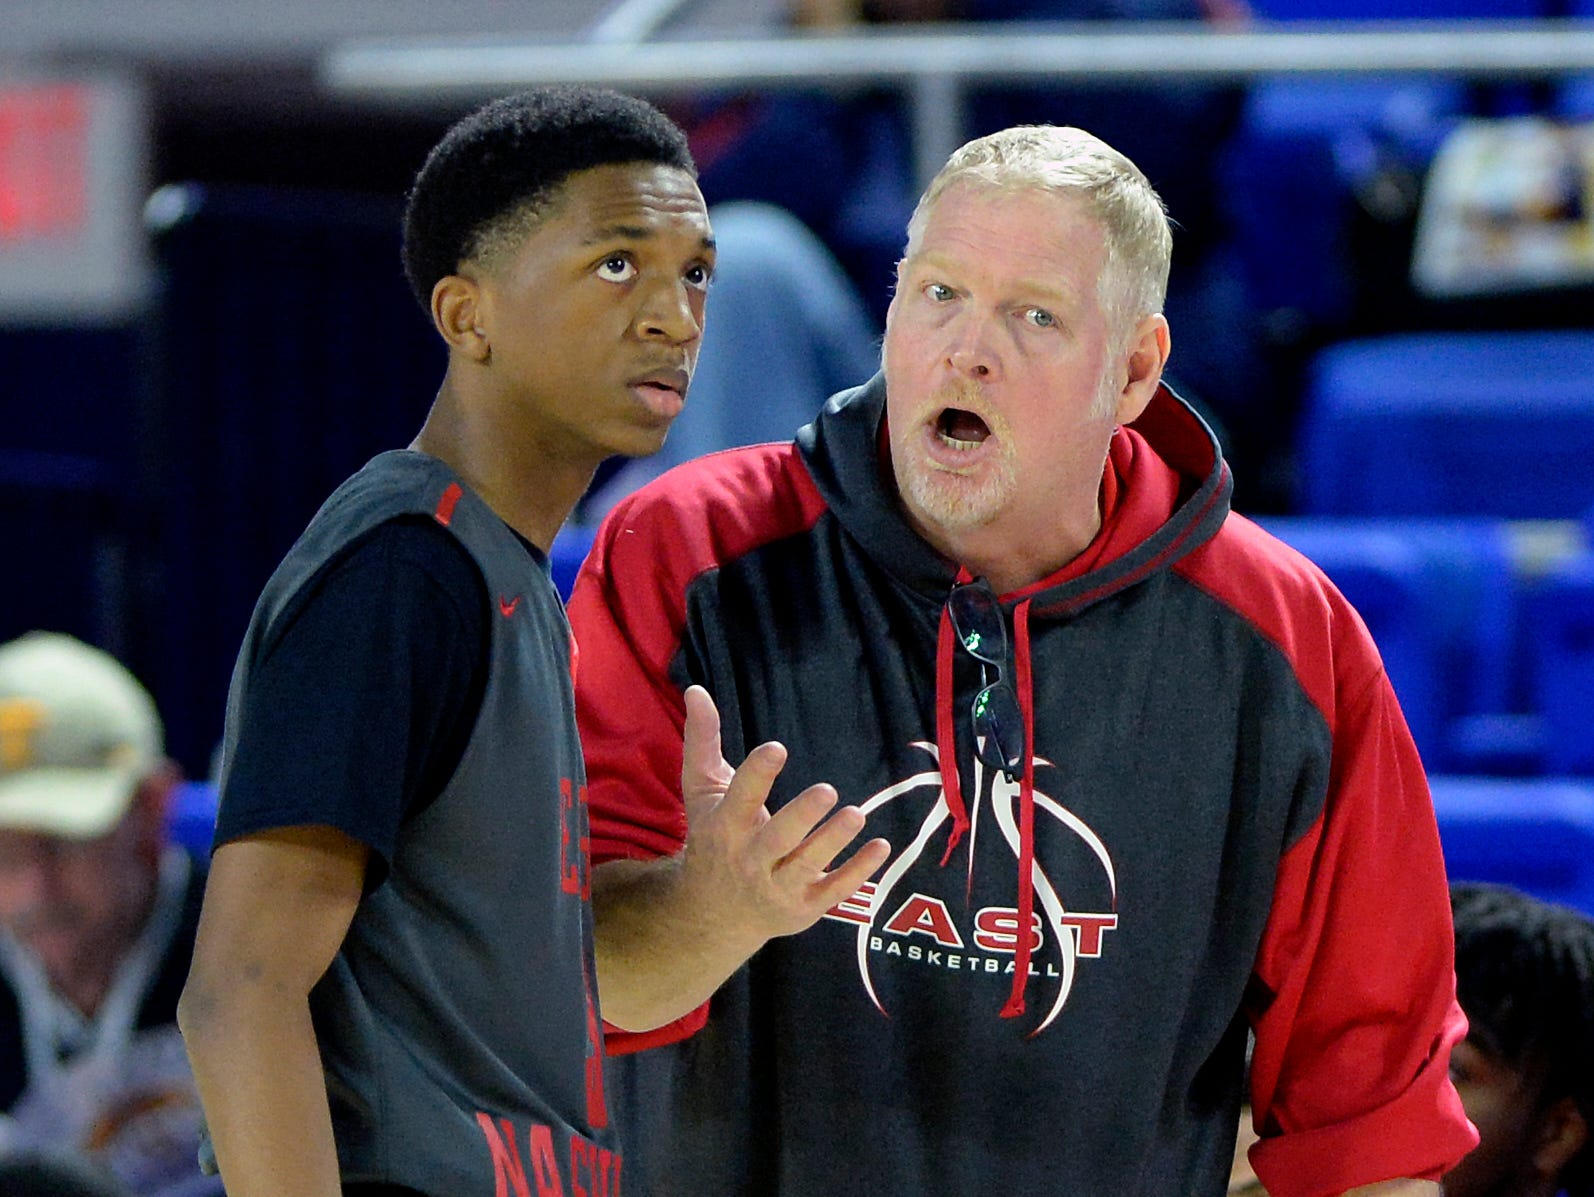 East Nashville head coach Jim Fey talks with Caleb Grimes during the first half of a Class AA boys' state basketball quarterfinal game against Howard Wednesday, March 13, 2019, in Murfreesboro, Tenn.